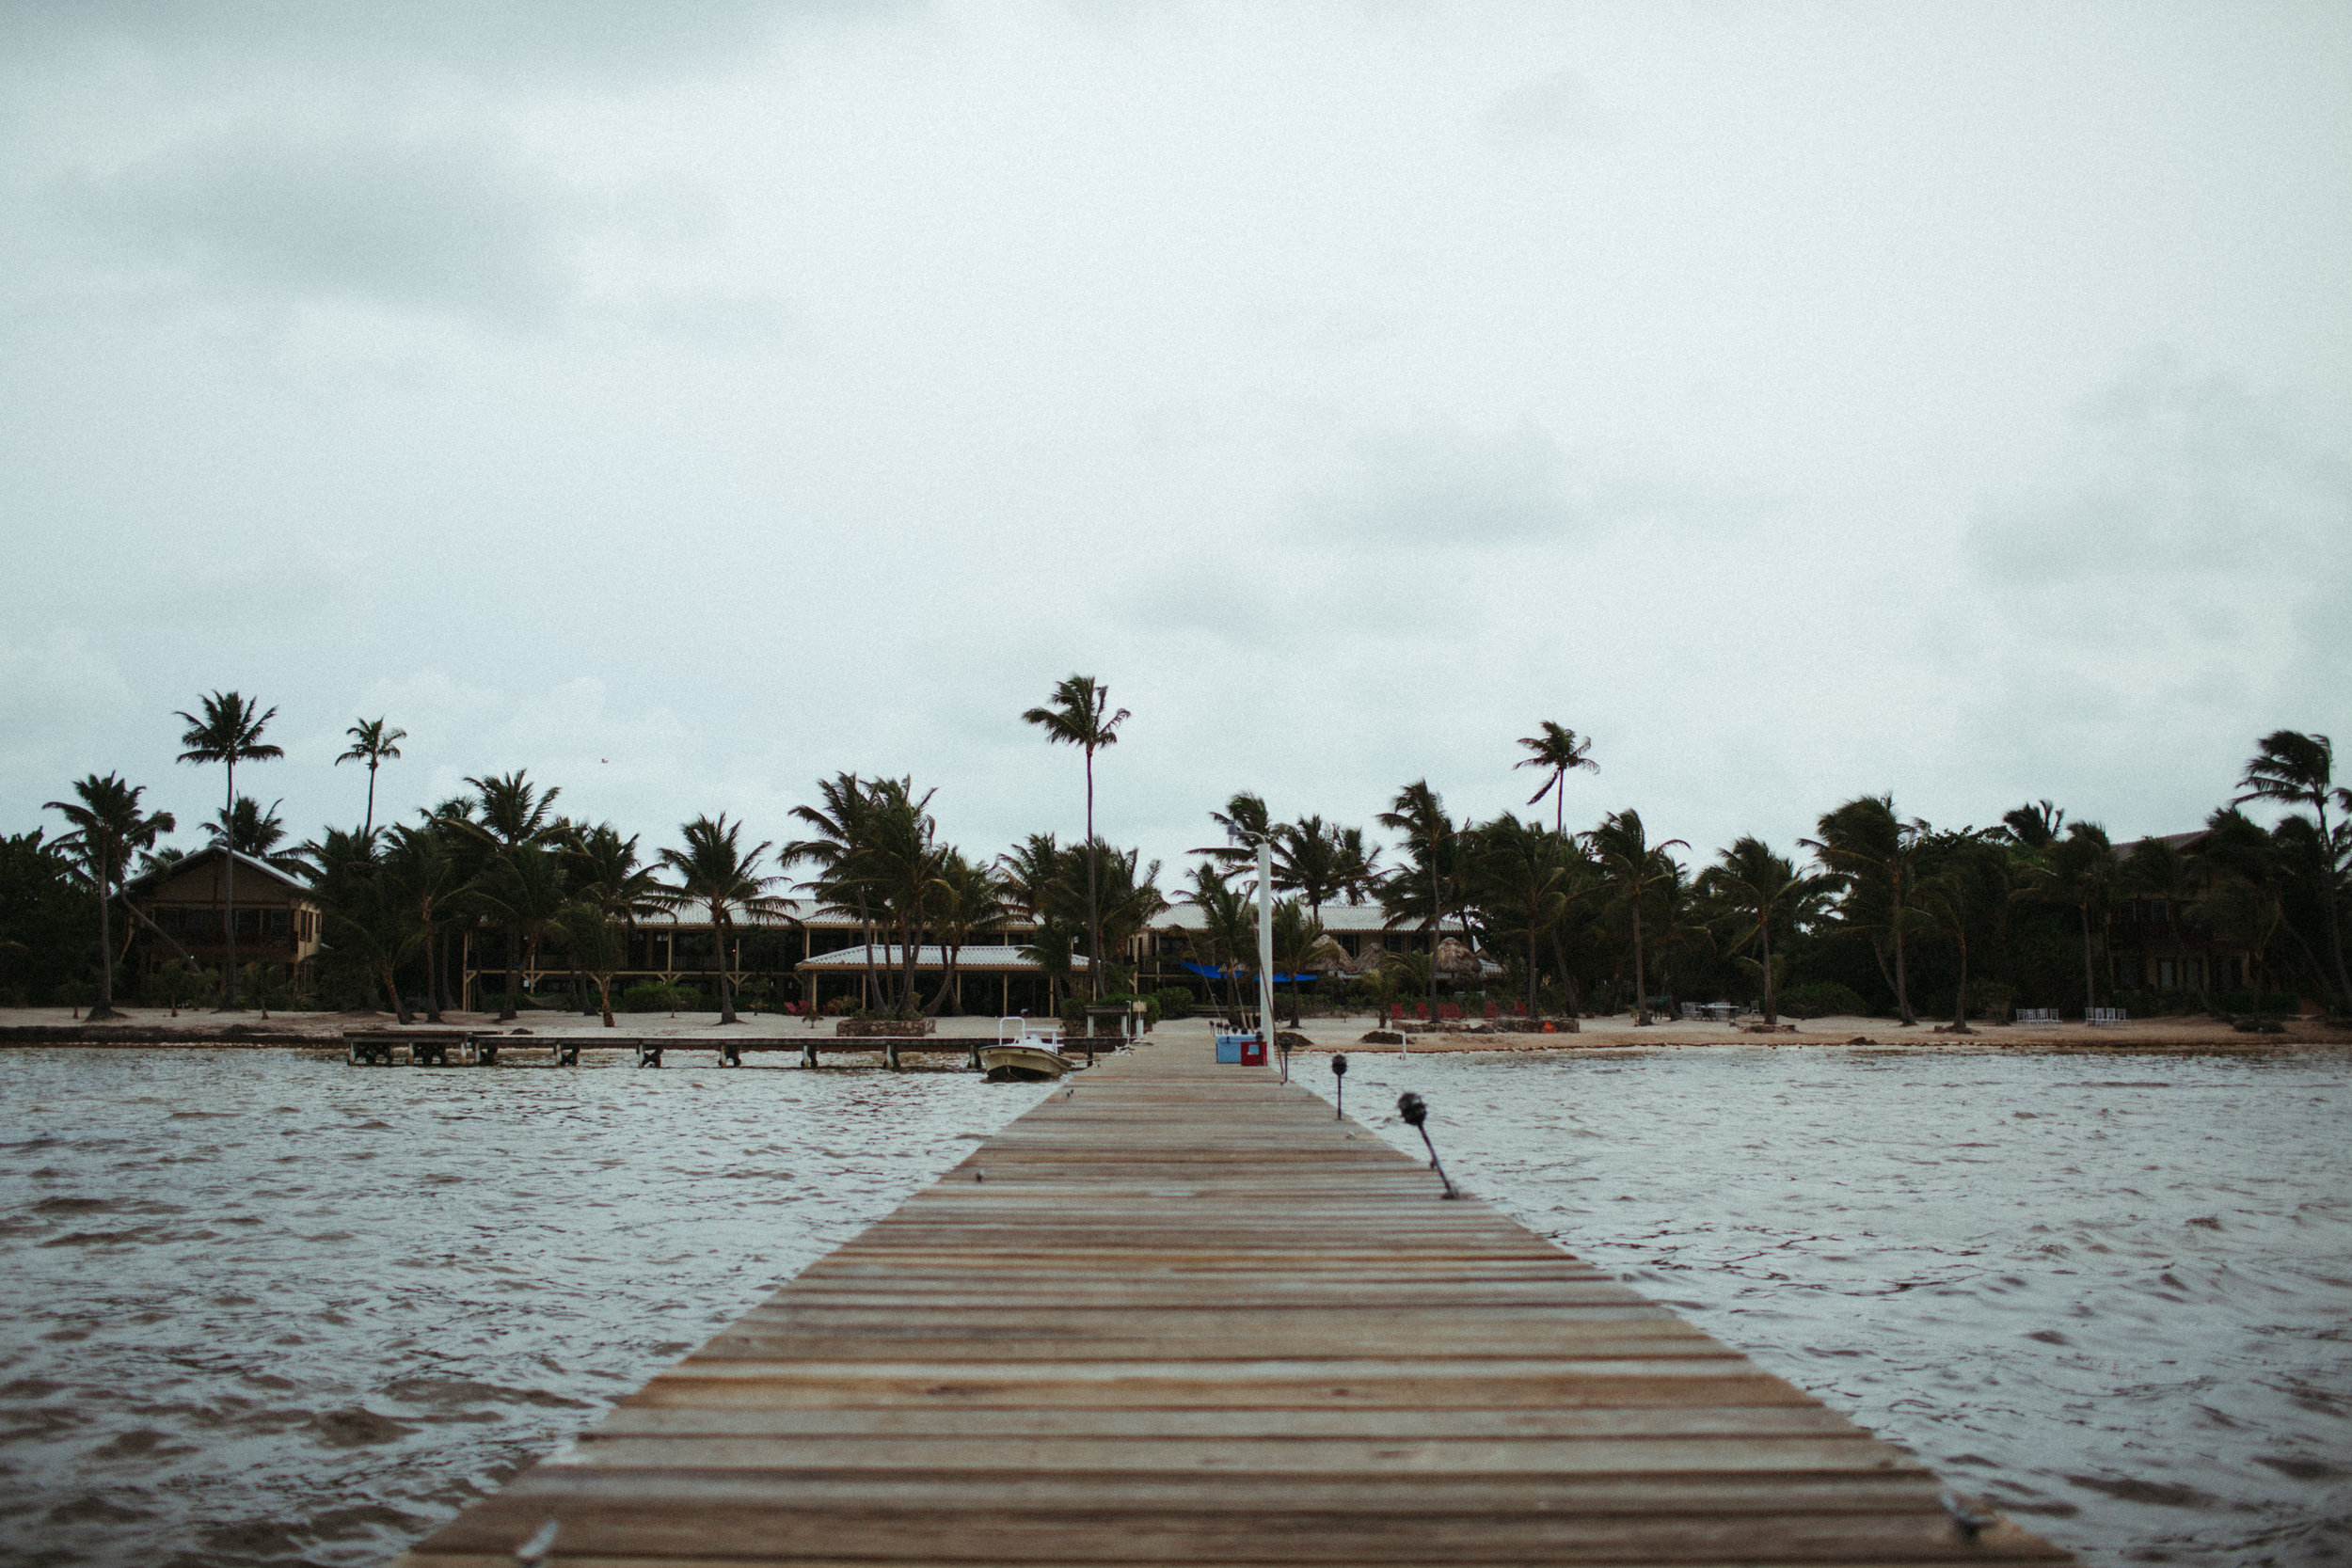 san-pescador-belize-wedding-christinemariephoto-j-k-9.jpg